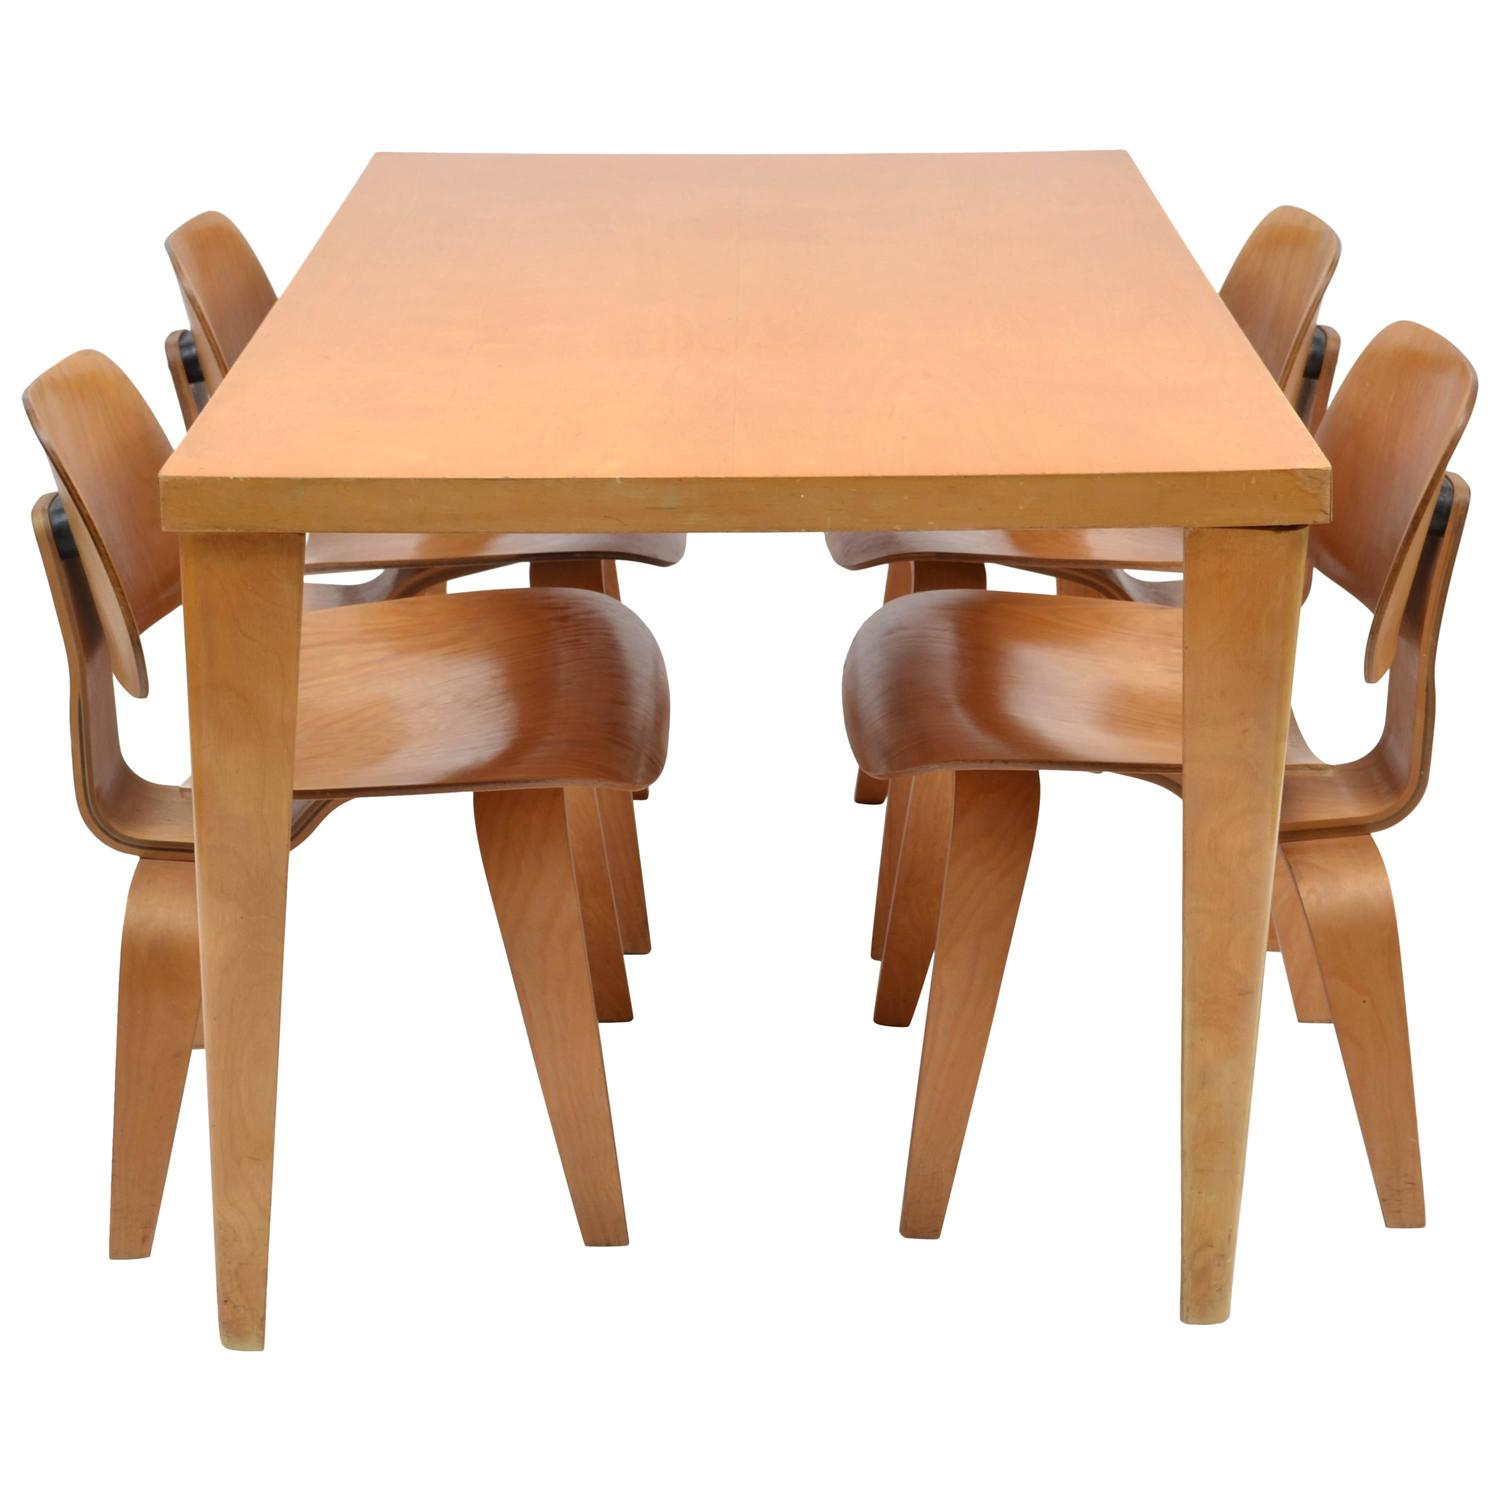 Charles Eames DTW 1 Table and DCW Chairs by Evans for Herman